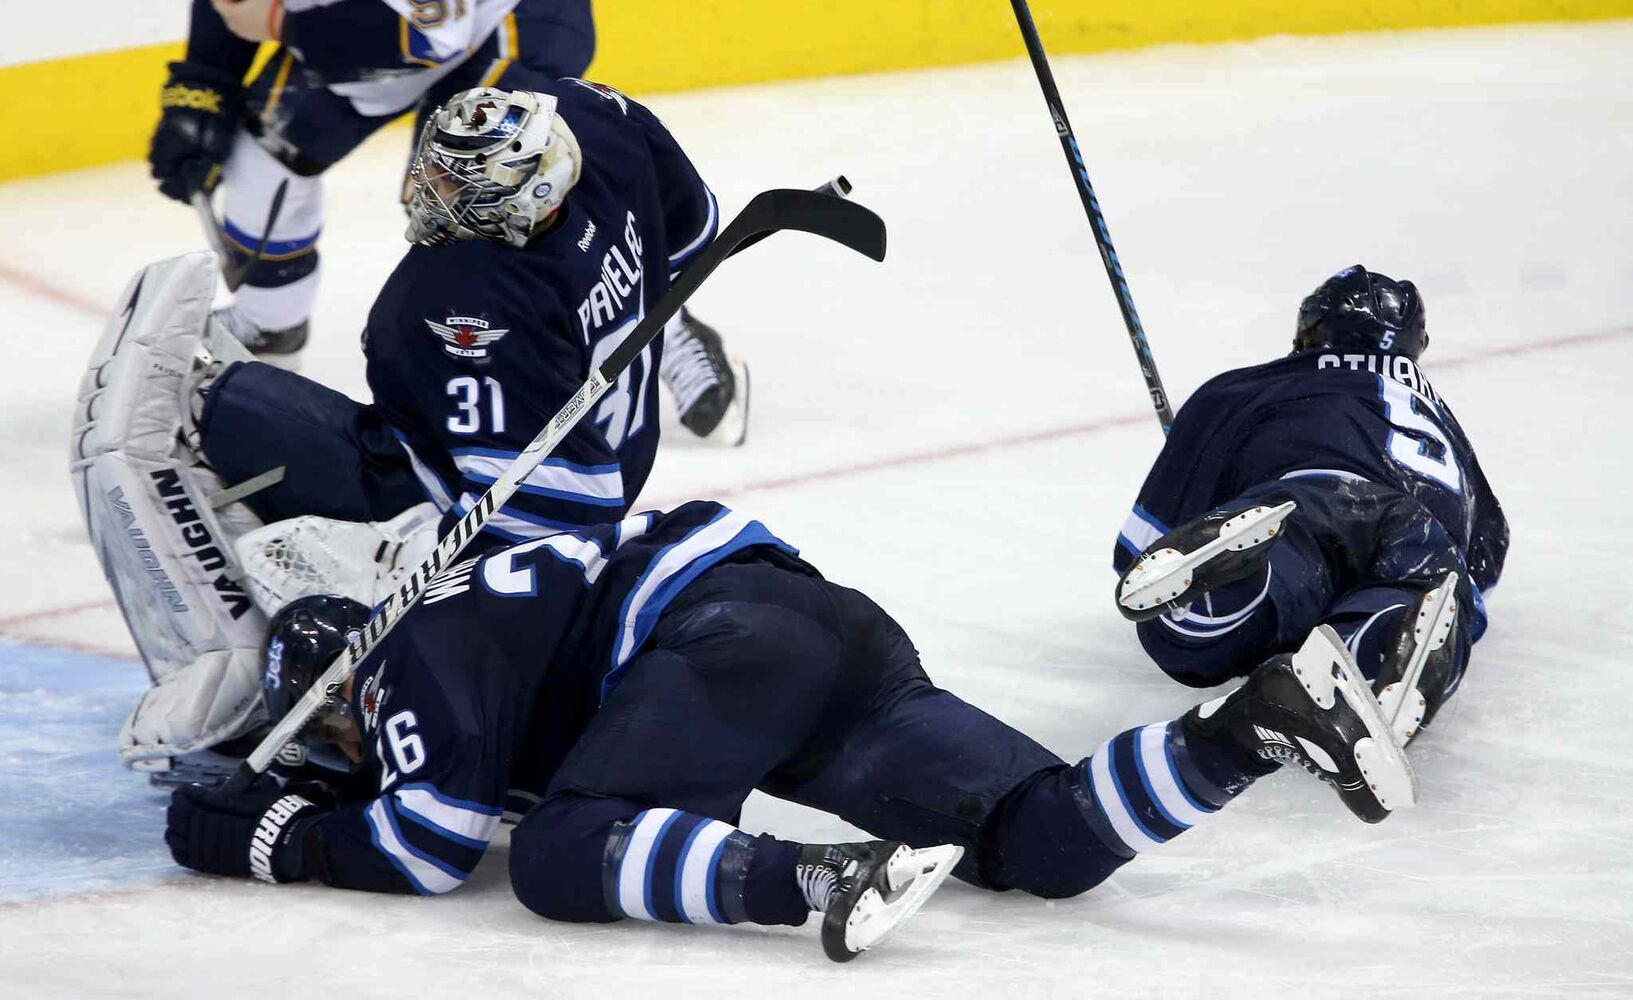 Winnipeg Jets goaltender Ondrej Pavelec falls onto teammate Blake Wheeler as defenceman Mark Stuart lays on the ice nearby during the third period.